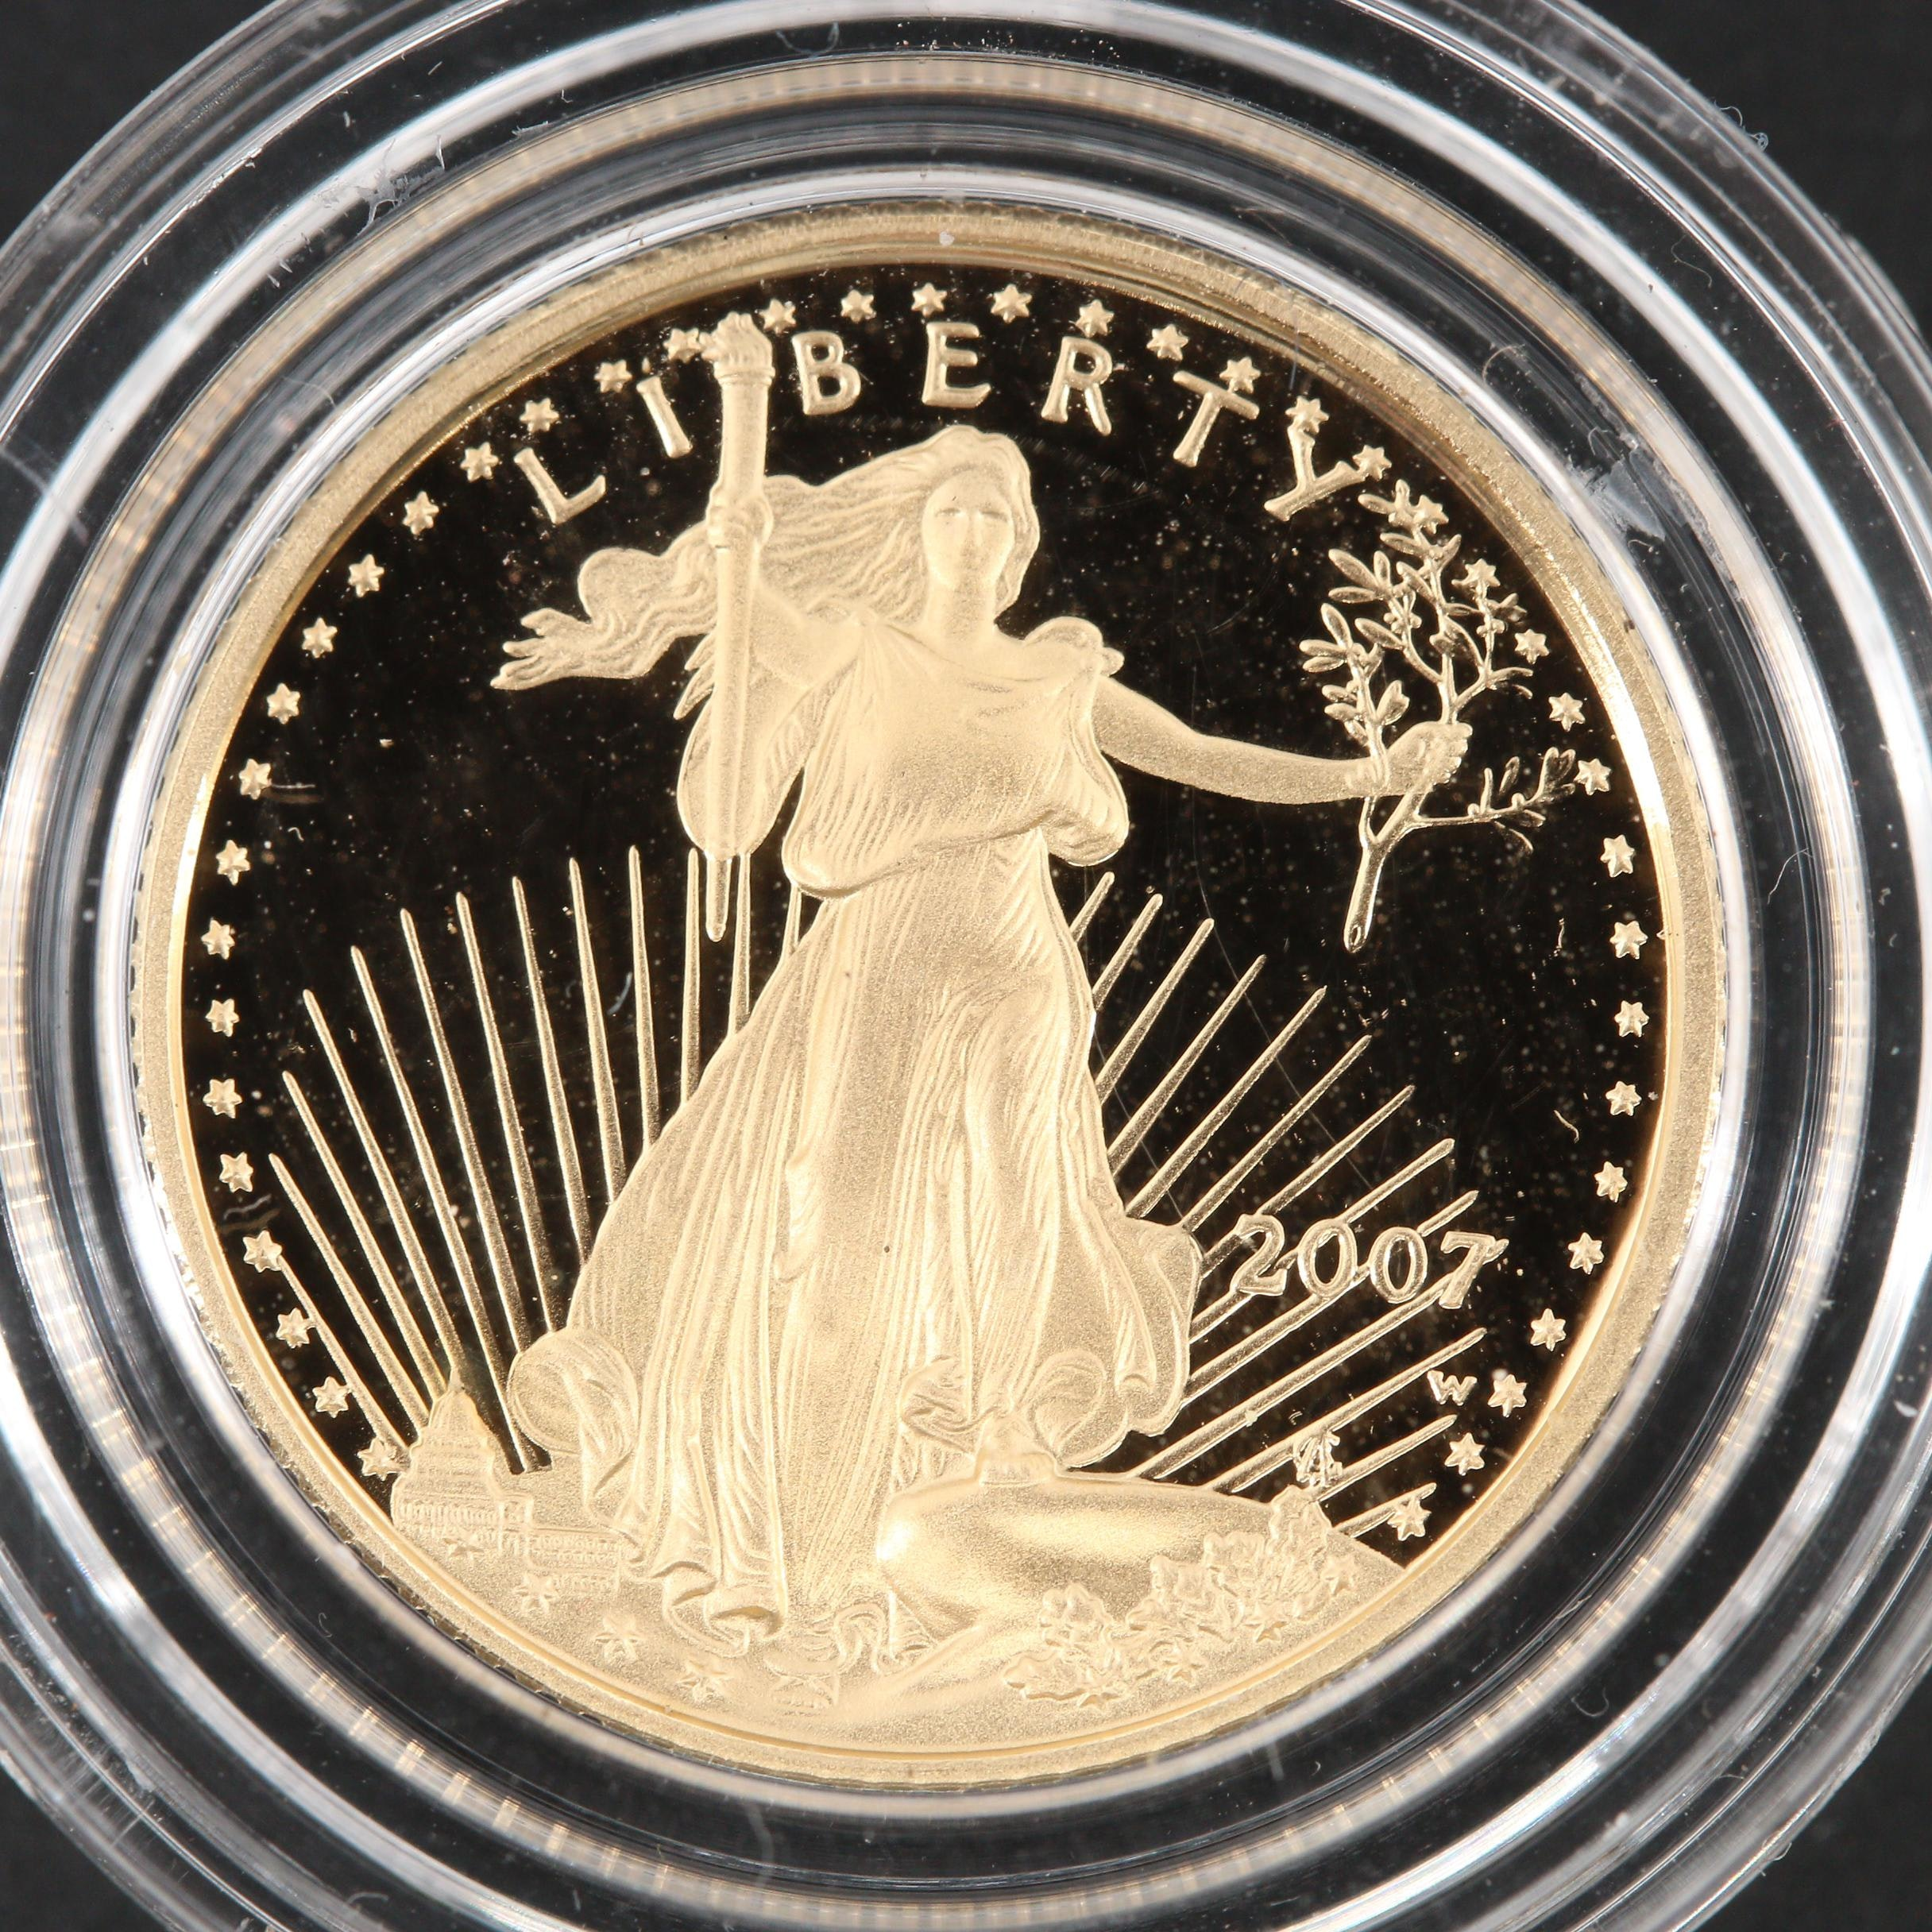 2007-W $5 Gold Eagle 1/10 Oz. Bullion Proof Coin